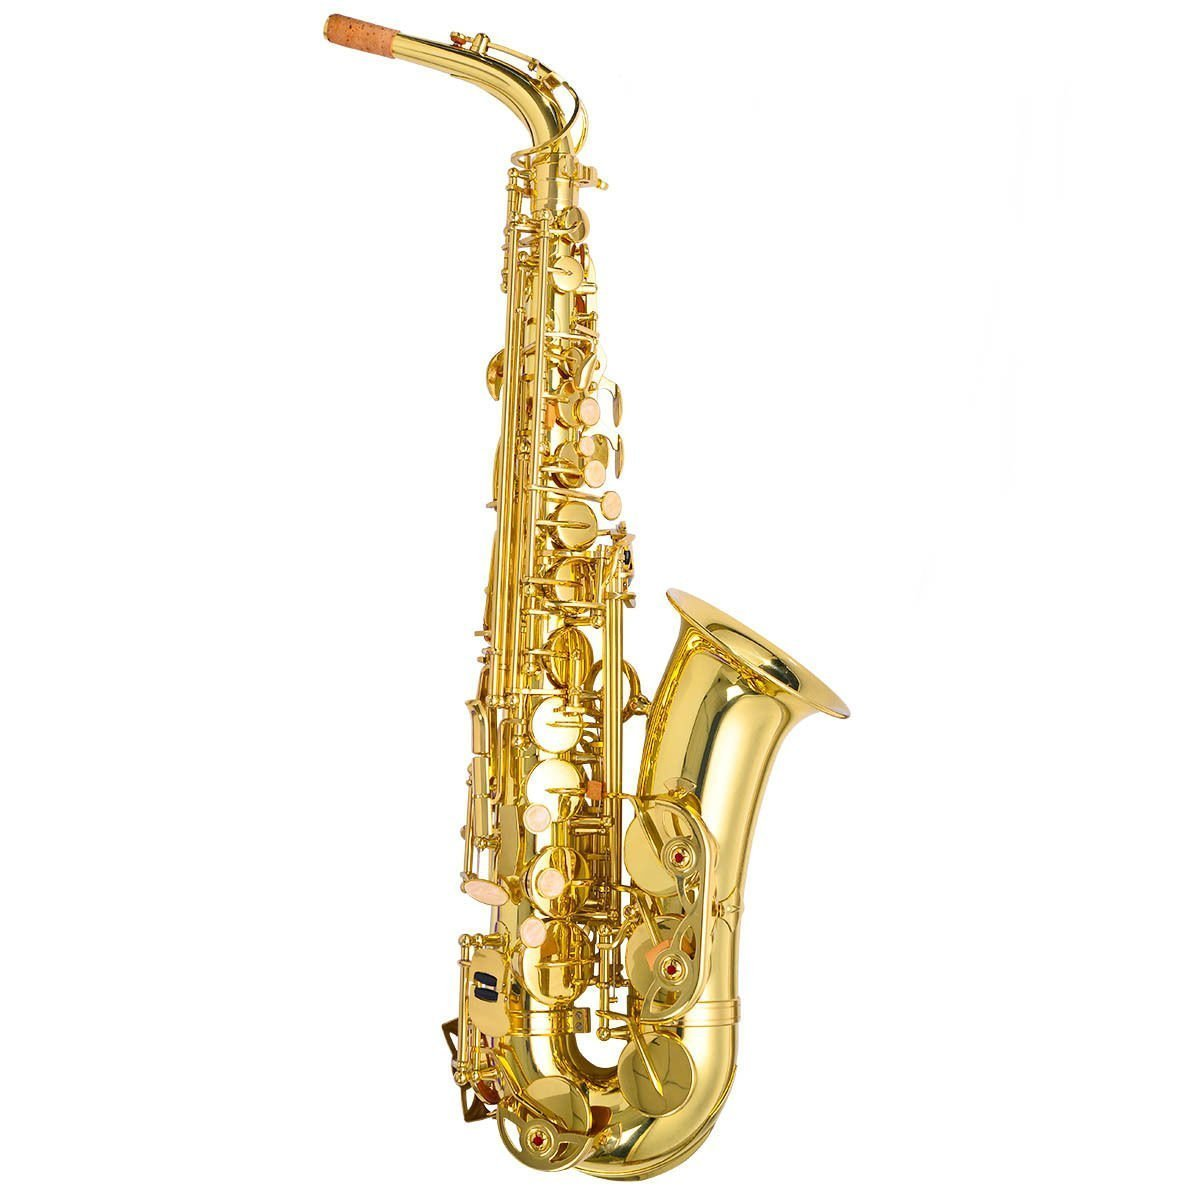 Professional OCDAY Gold Eb Alto Sax Saxophone Musical instruments With Case Accessories... by konxa